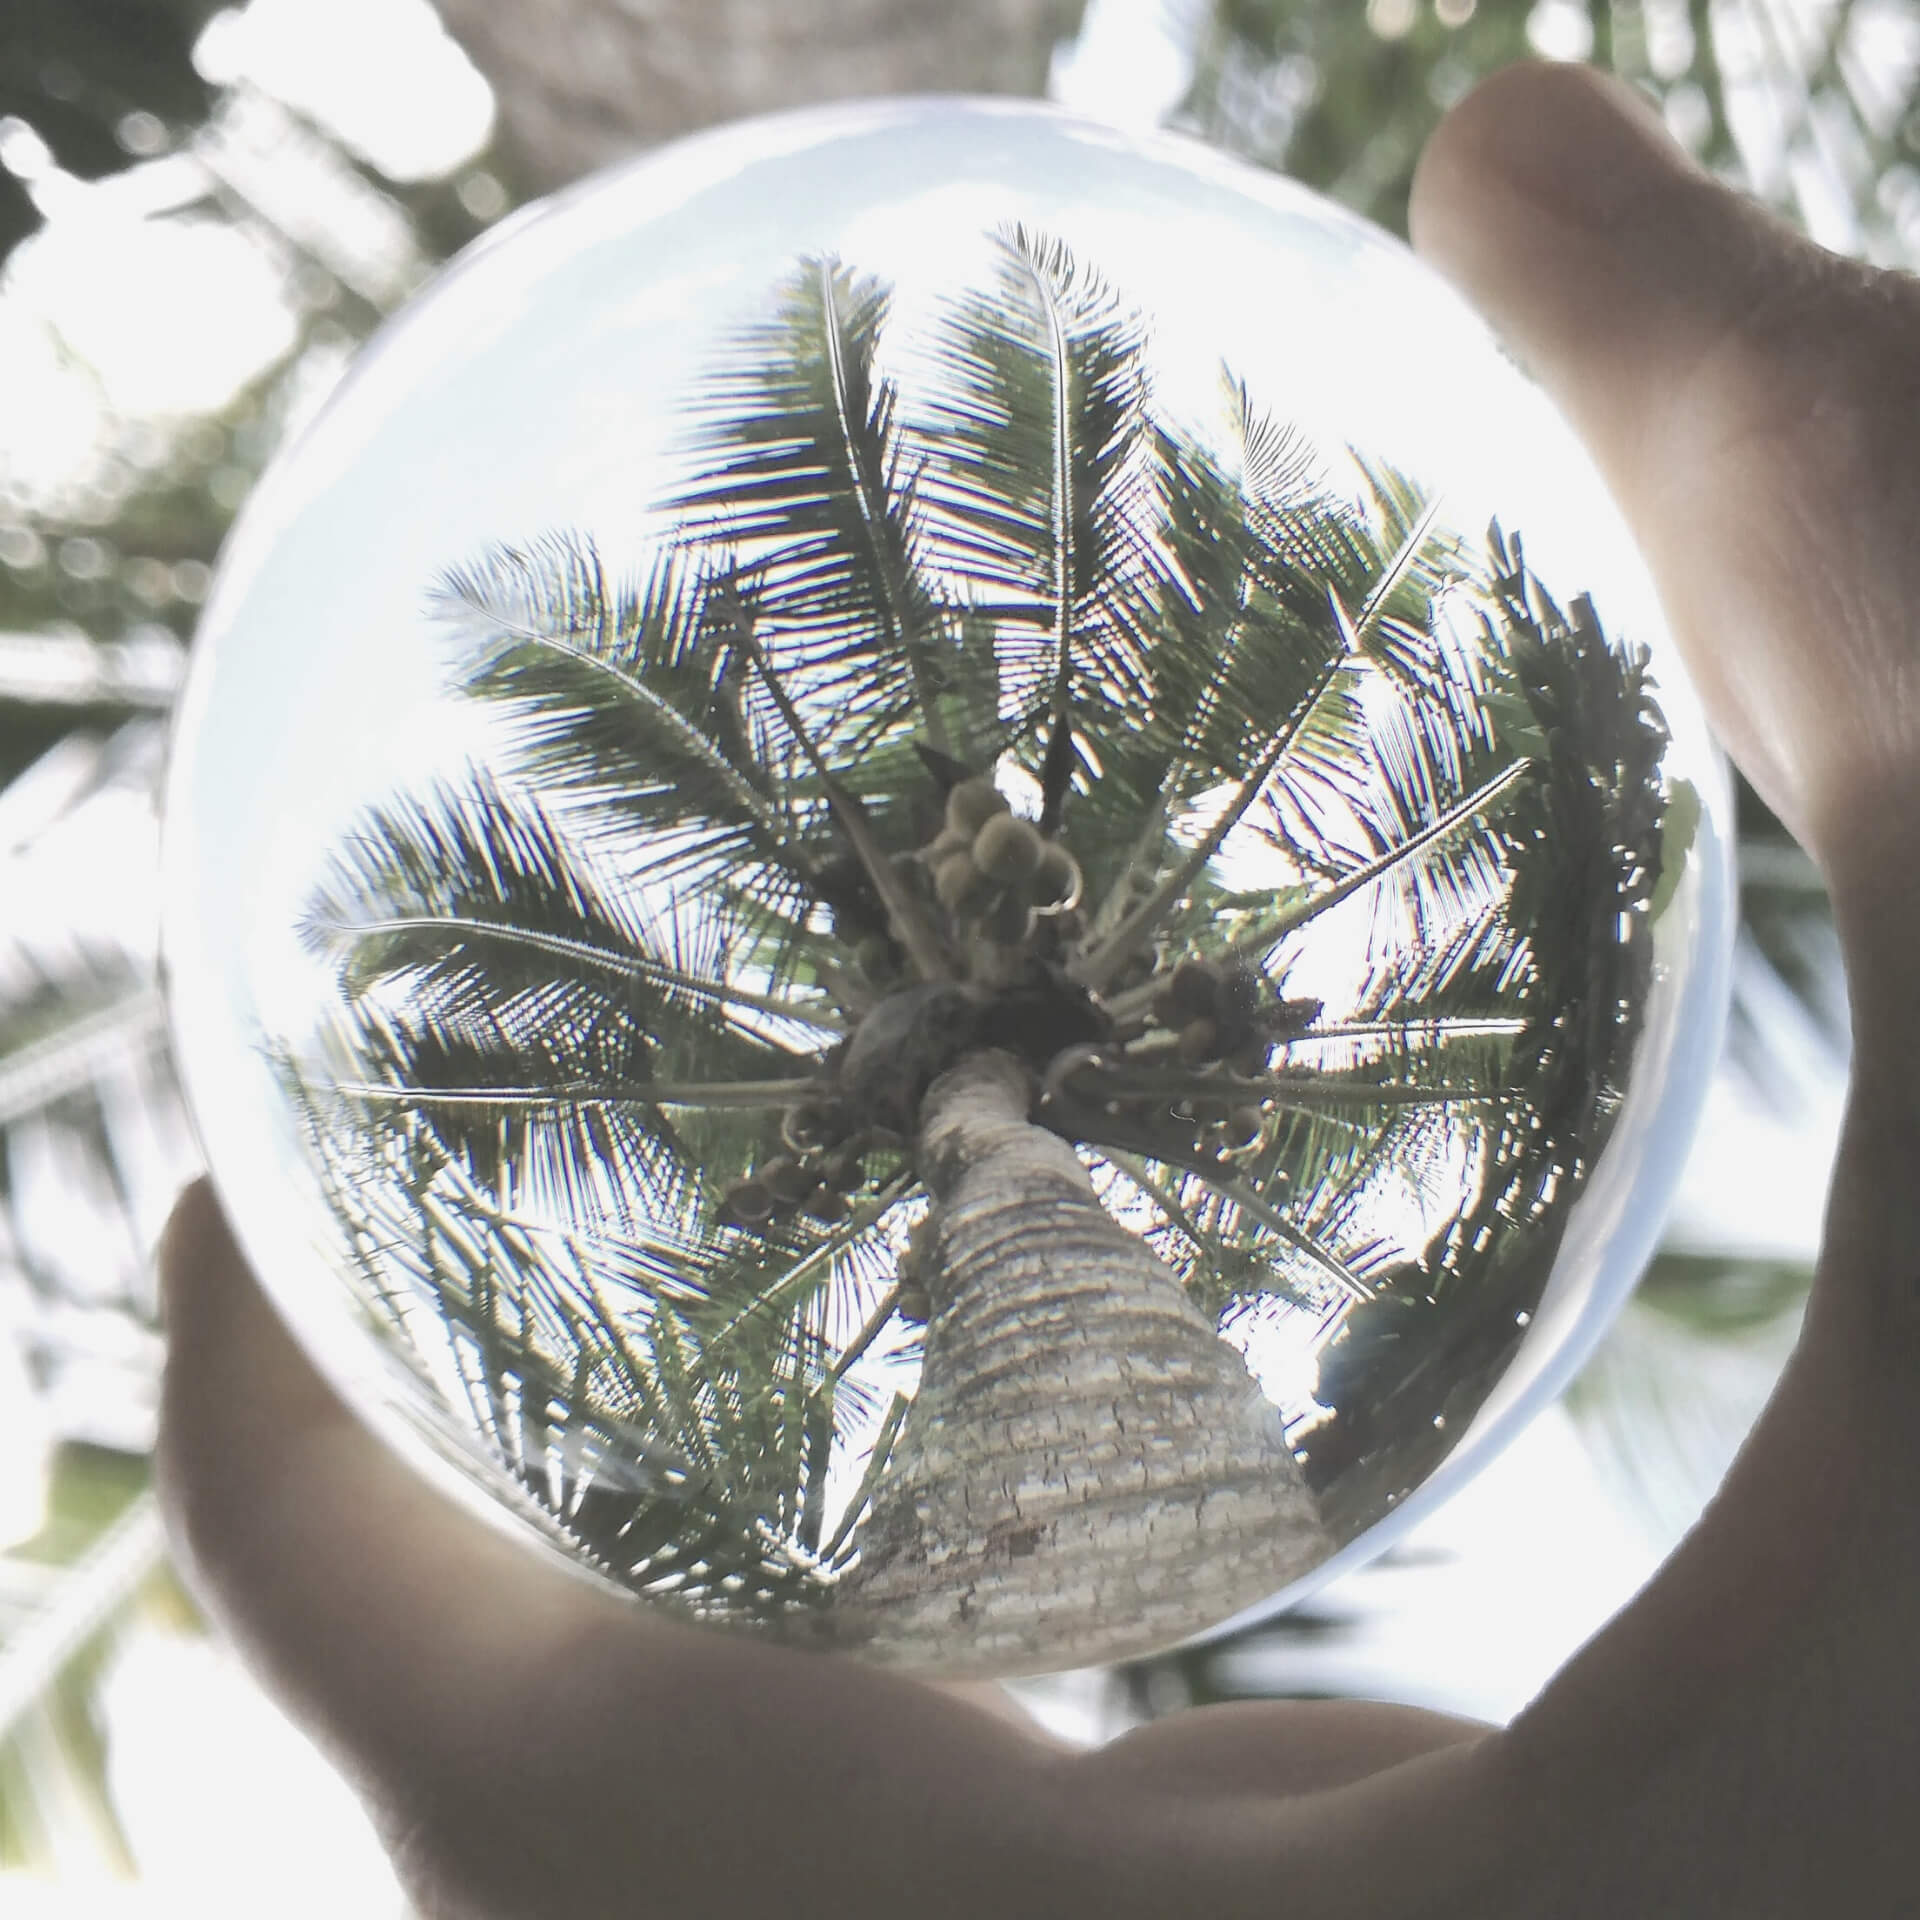 SEO predictions in 2020: Crystal ball with a palm tree in it.